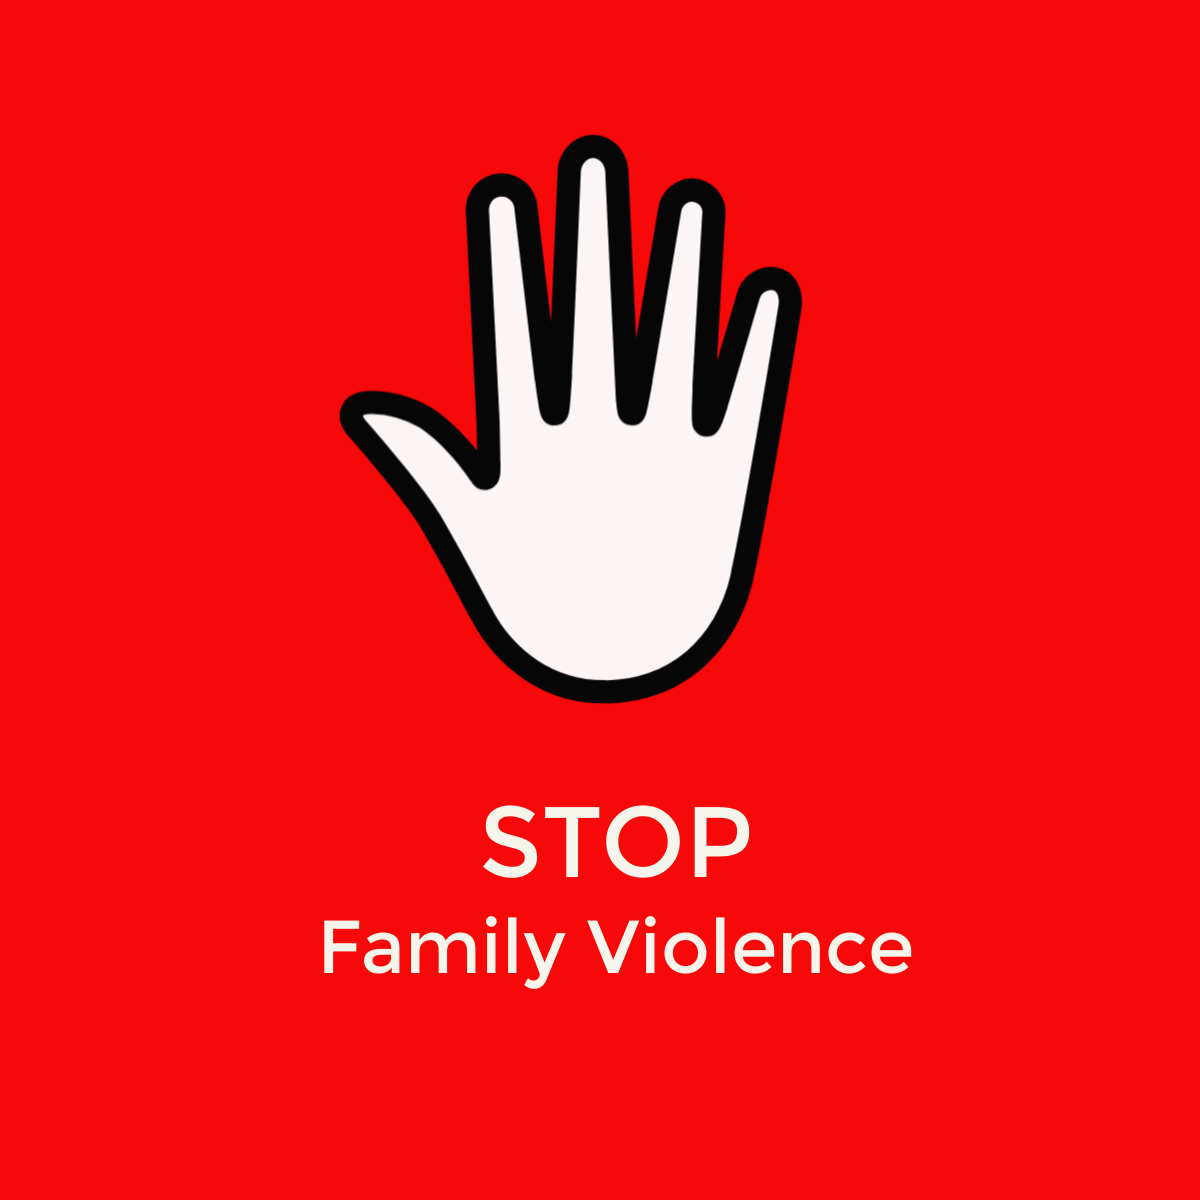 Seeking Help For Domestic Family Violence